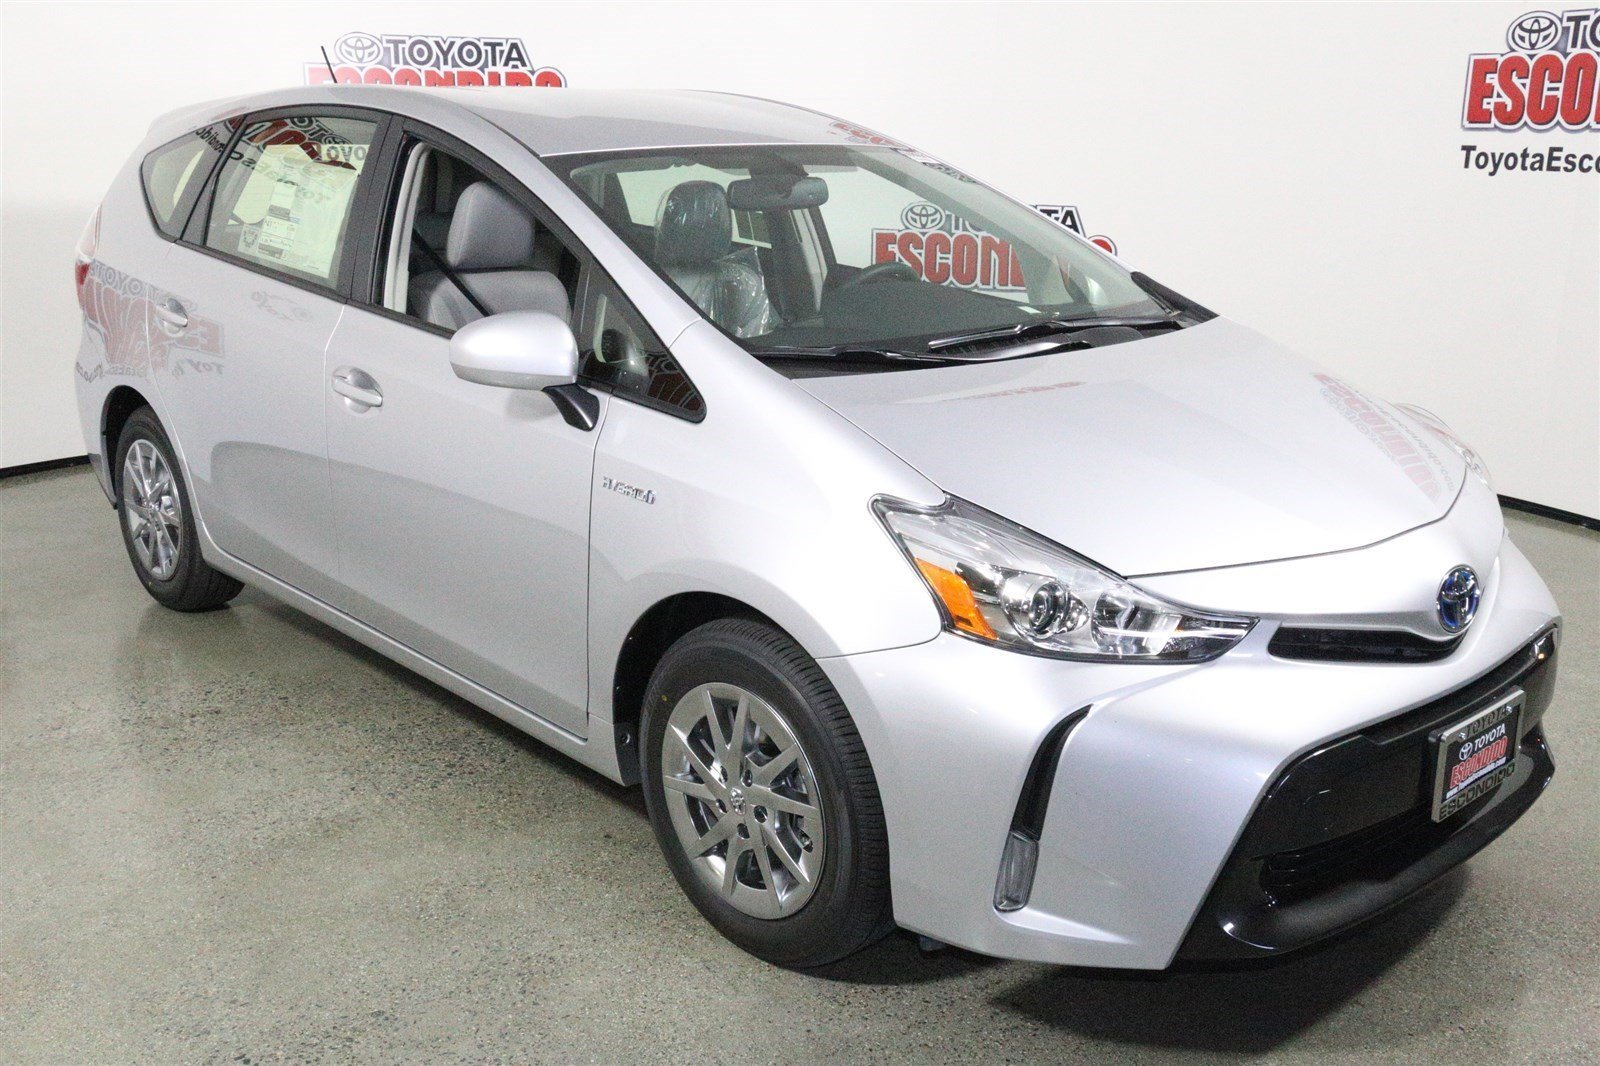 new 2017 toyota prius v four station wagon in escondido hj065031 toyota escondido. Black Bedroom Furniture Sets. Home Design Ideas